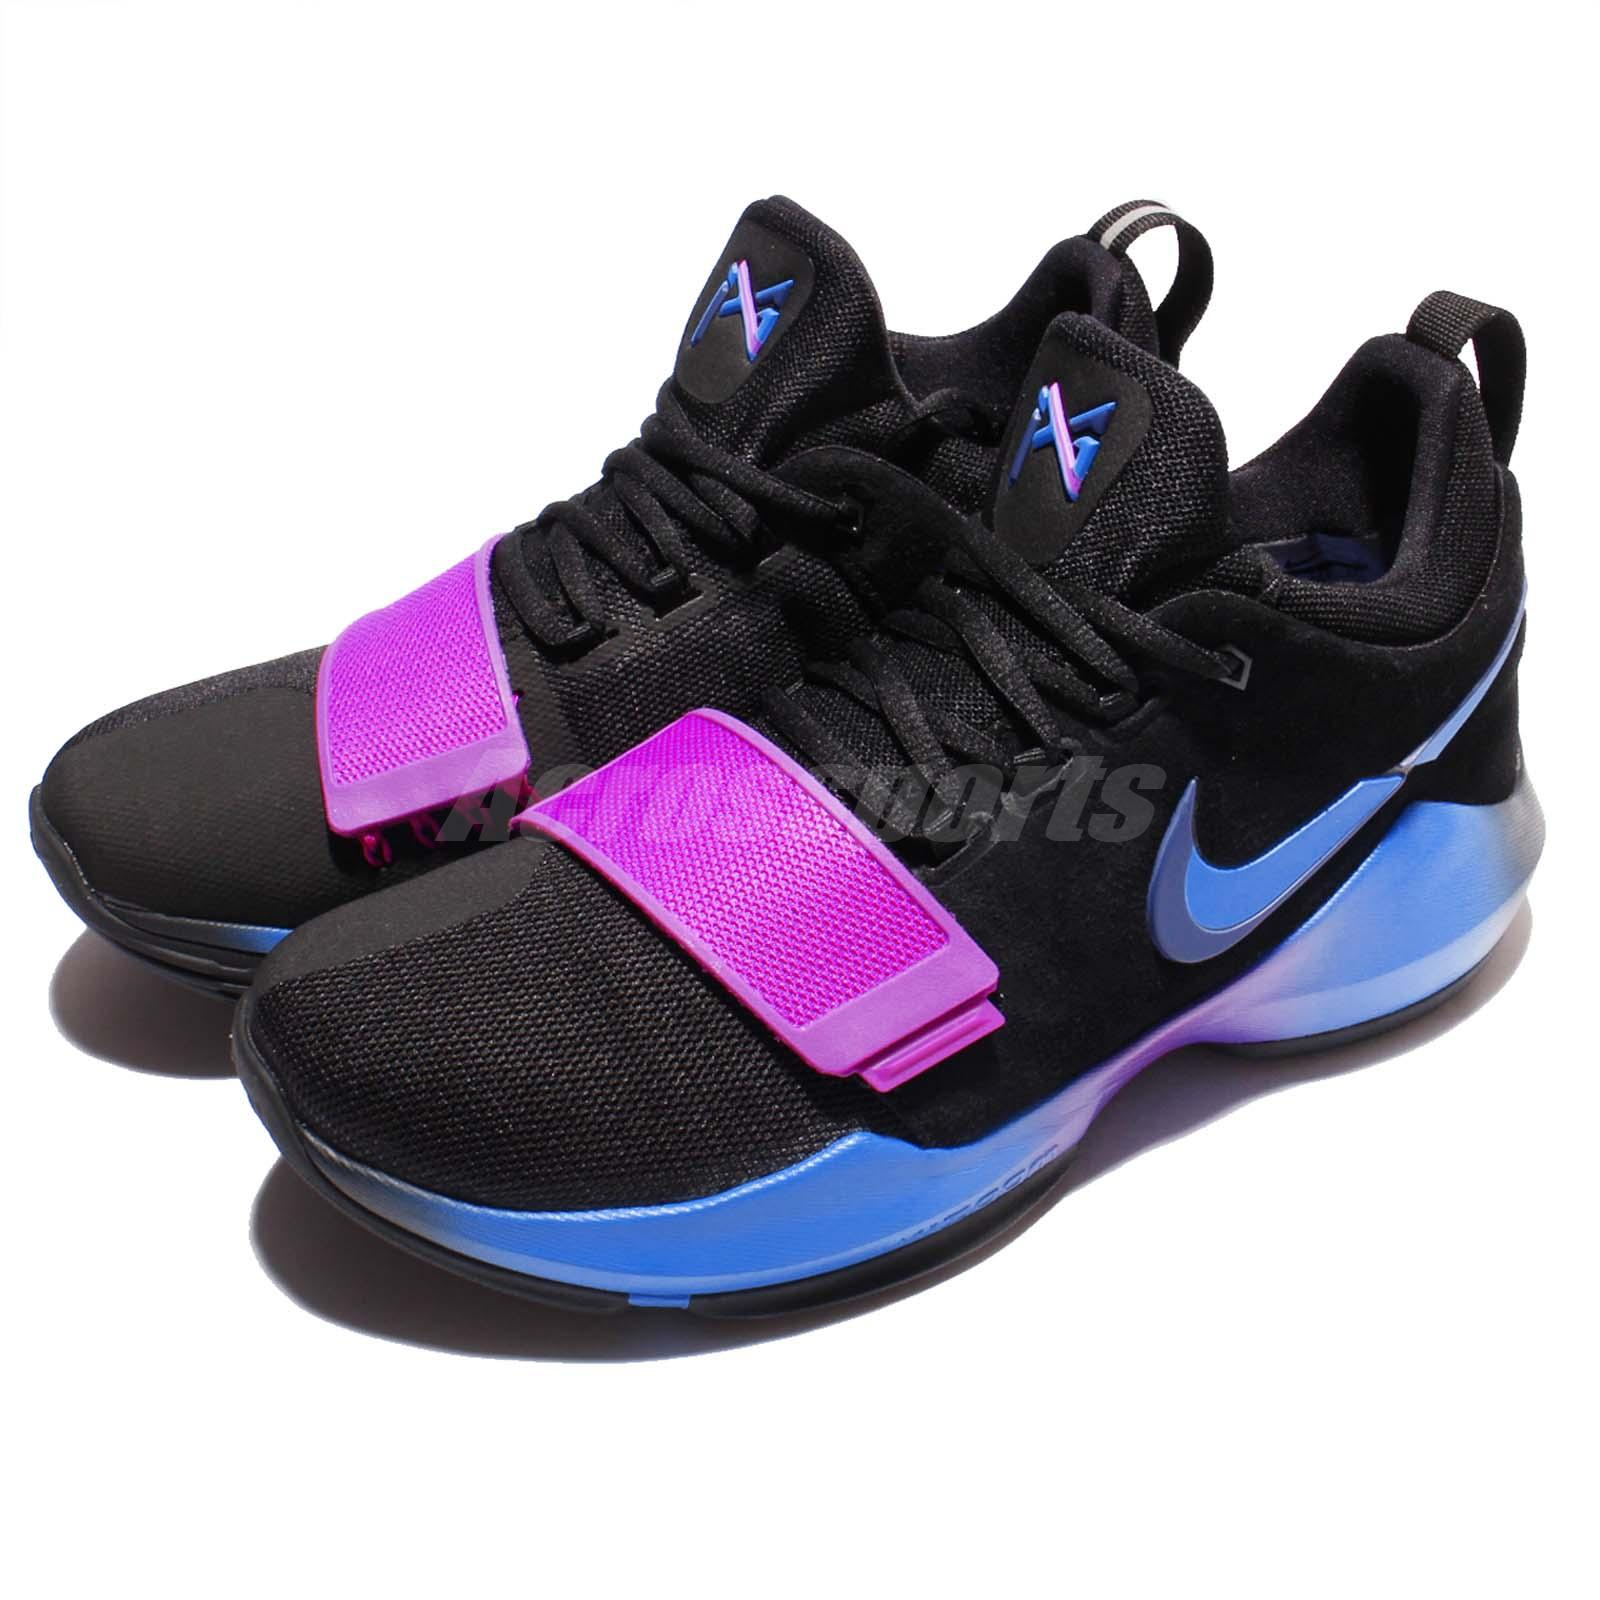 Pg Basketball Shoes Amazon